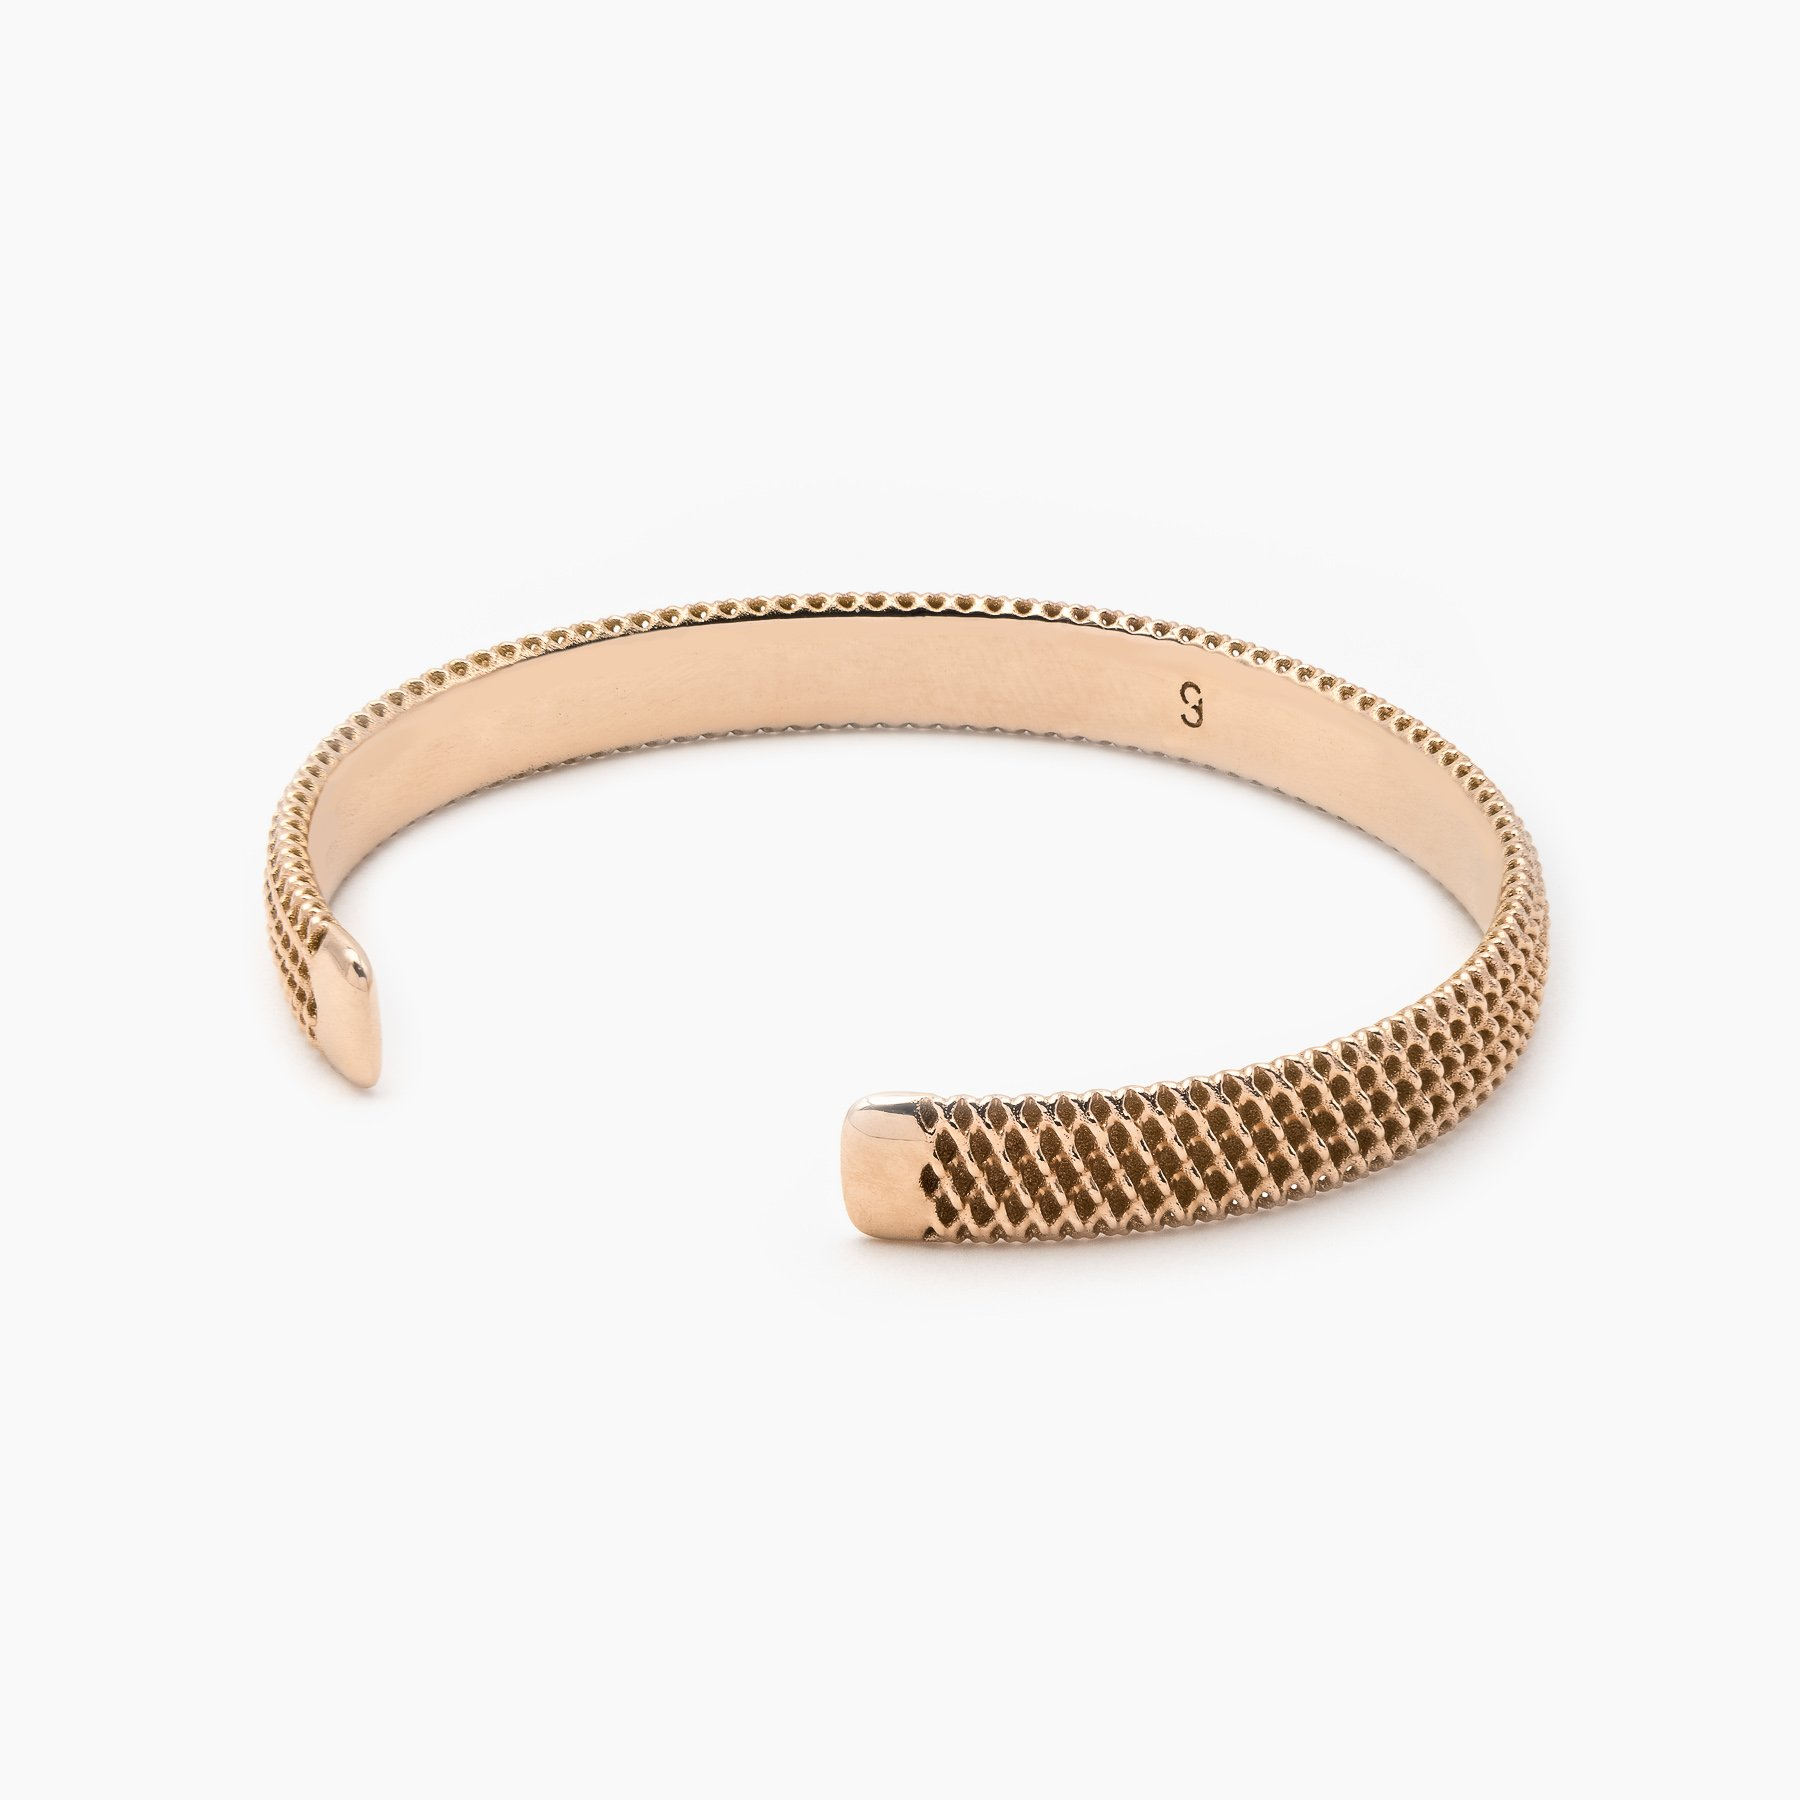 Iva Bangle | Small | Article code: Iva-Bangle-S